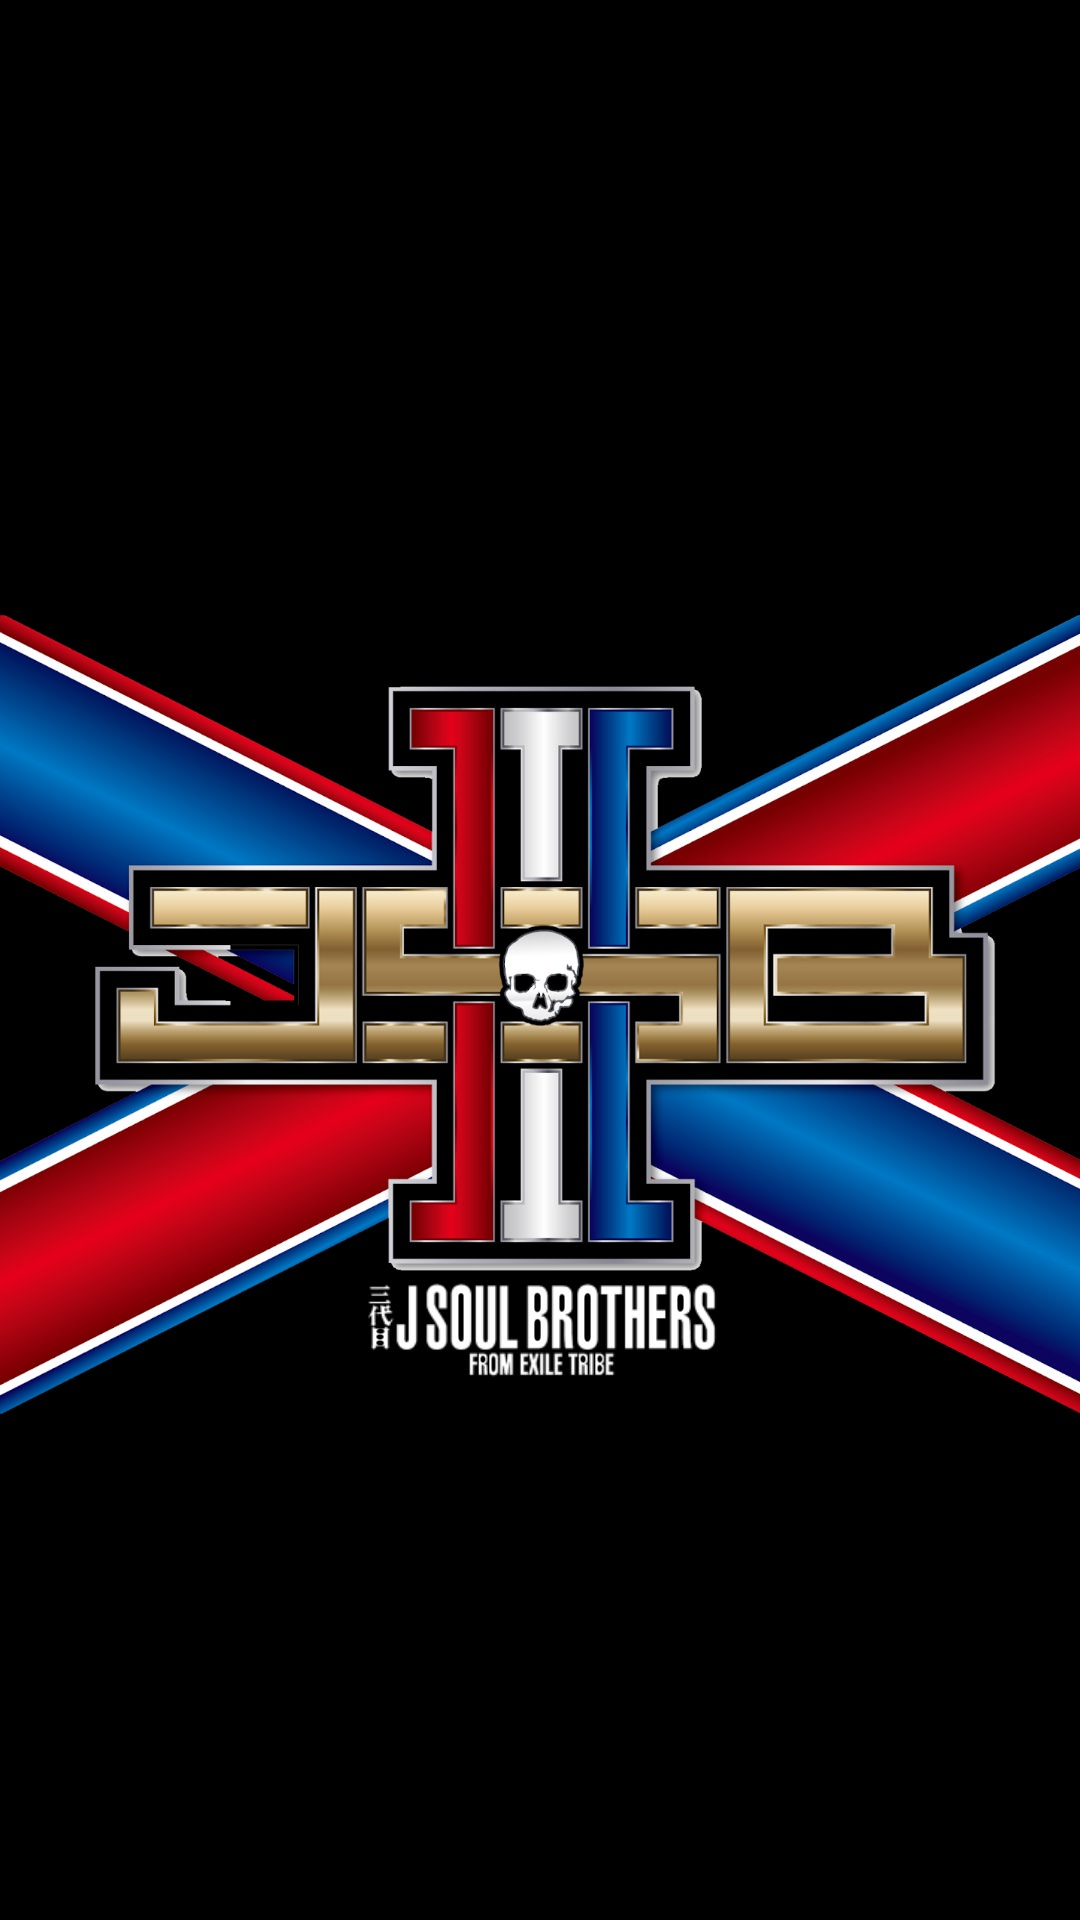 3jsb i36 - 三代目 J SOUL BROTHERSの高画質スマホ壁紙40枚 [iPhone&Androidに対応]